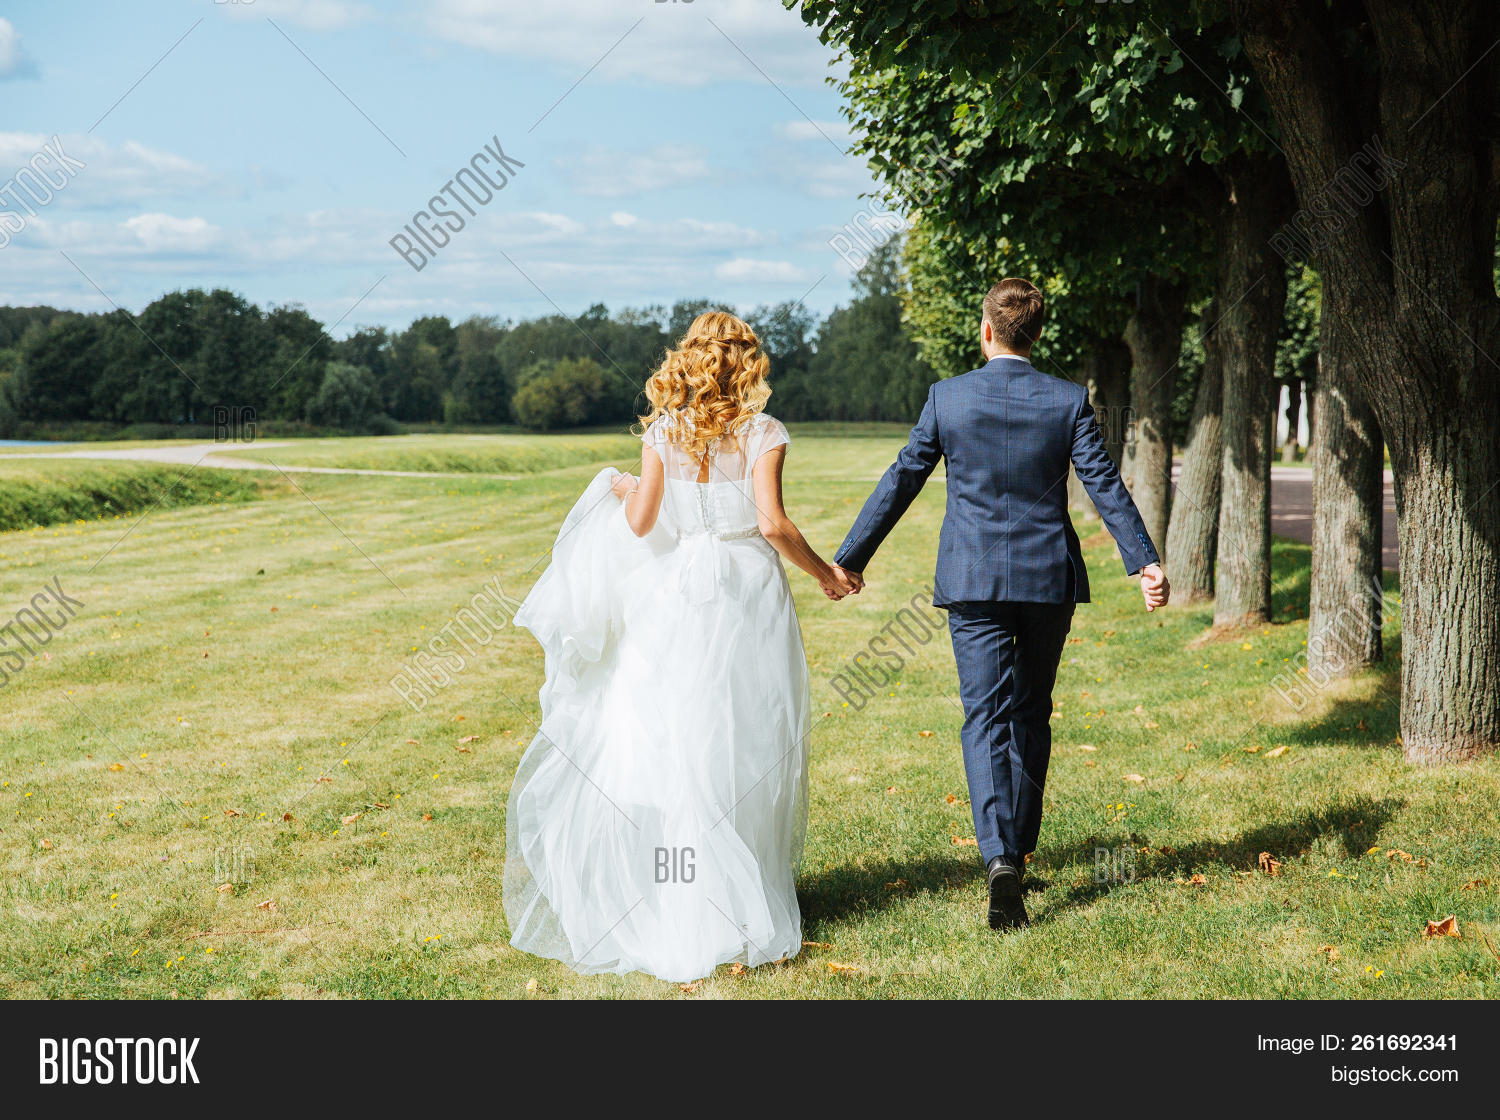 Tremendous Bride Groom Running Image Photo Free Trial Bigstock Download Free Architecture Designs Scobabritishbridgeorg